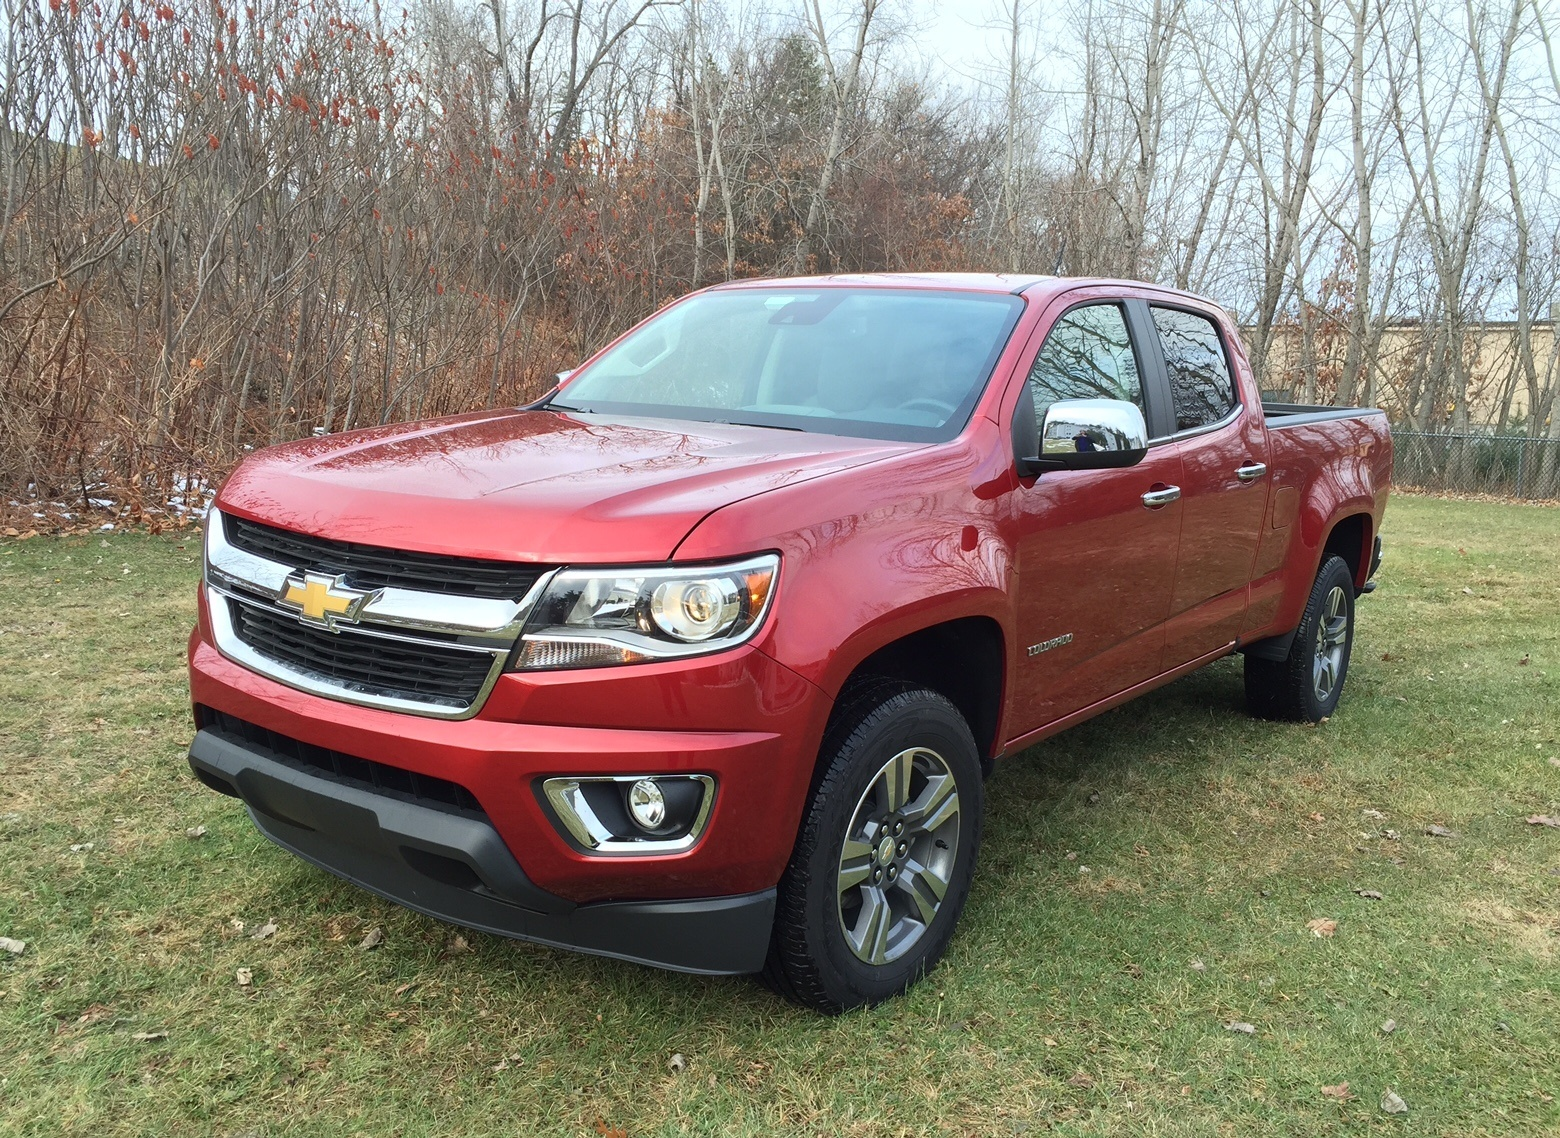 Used Chevy Colorado For Sale >> 2015 Chevrolet Colorado Overview Cargurus